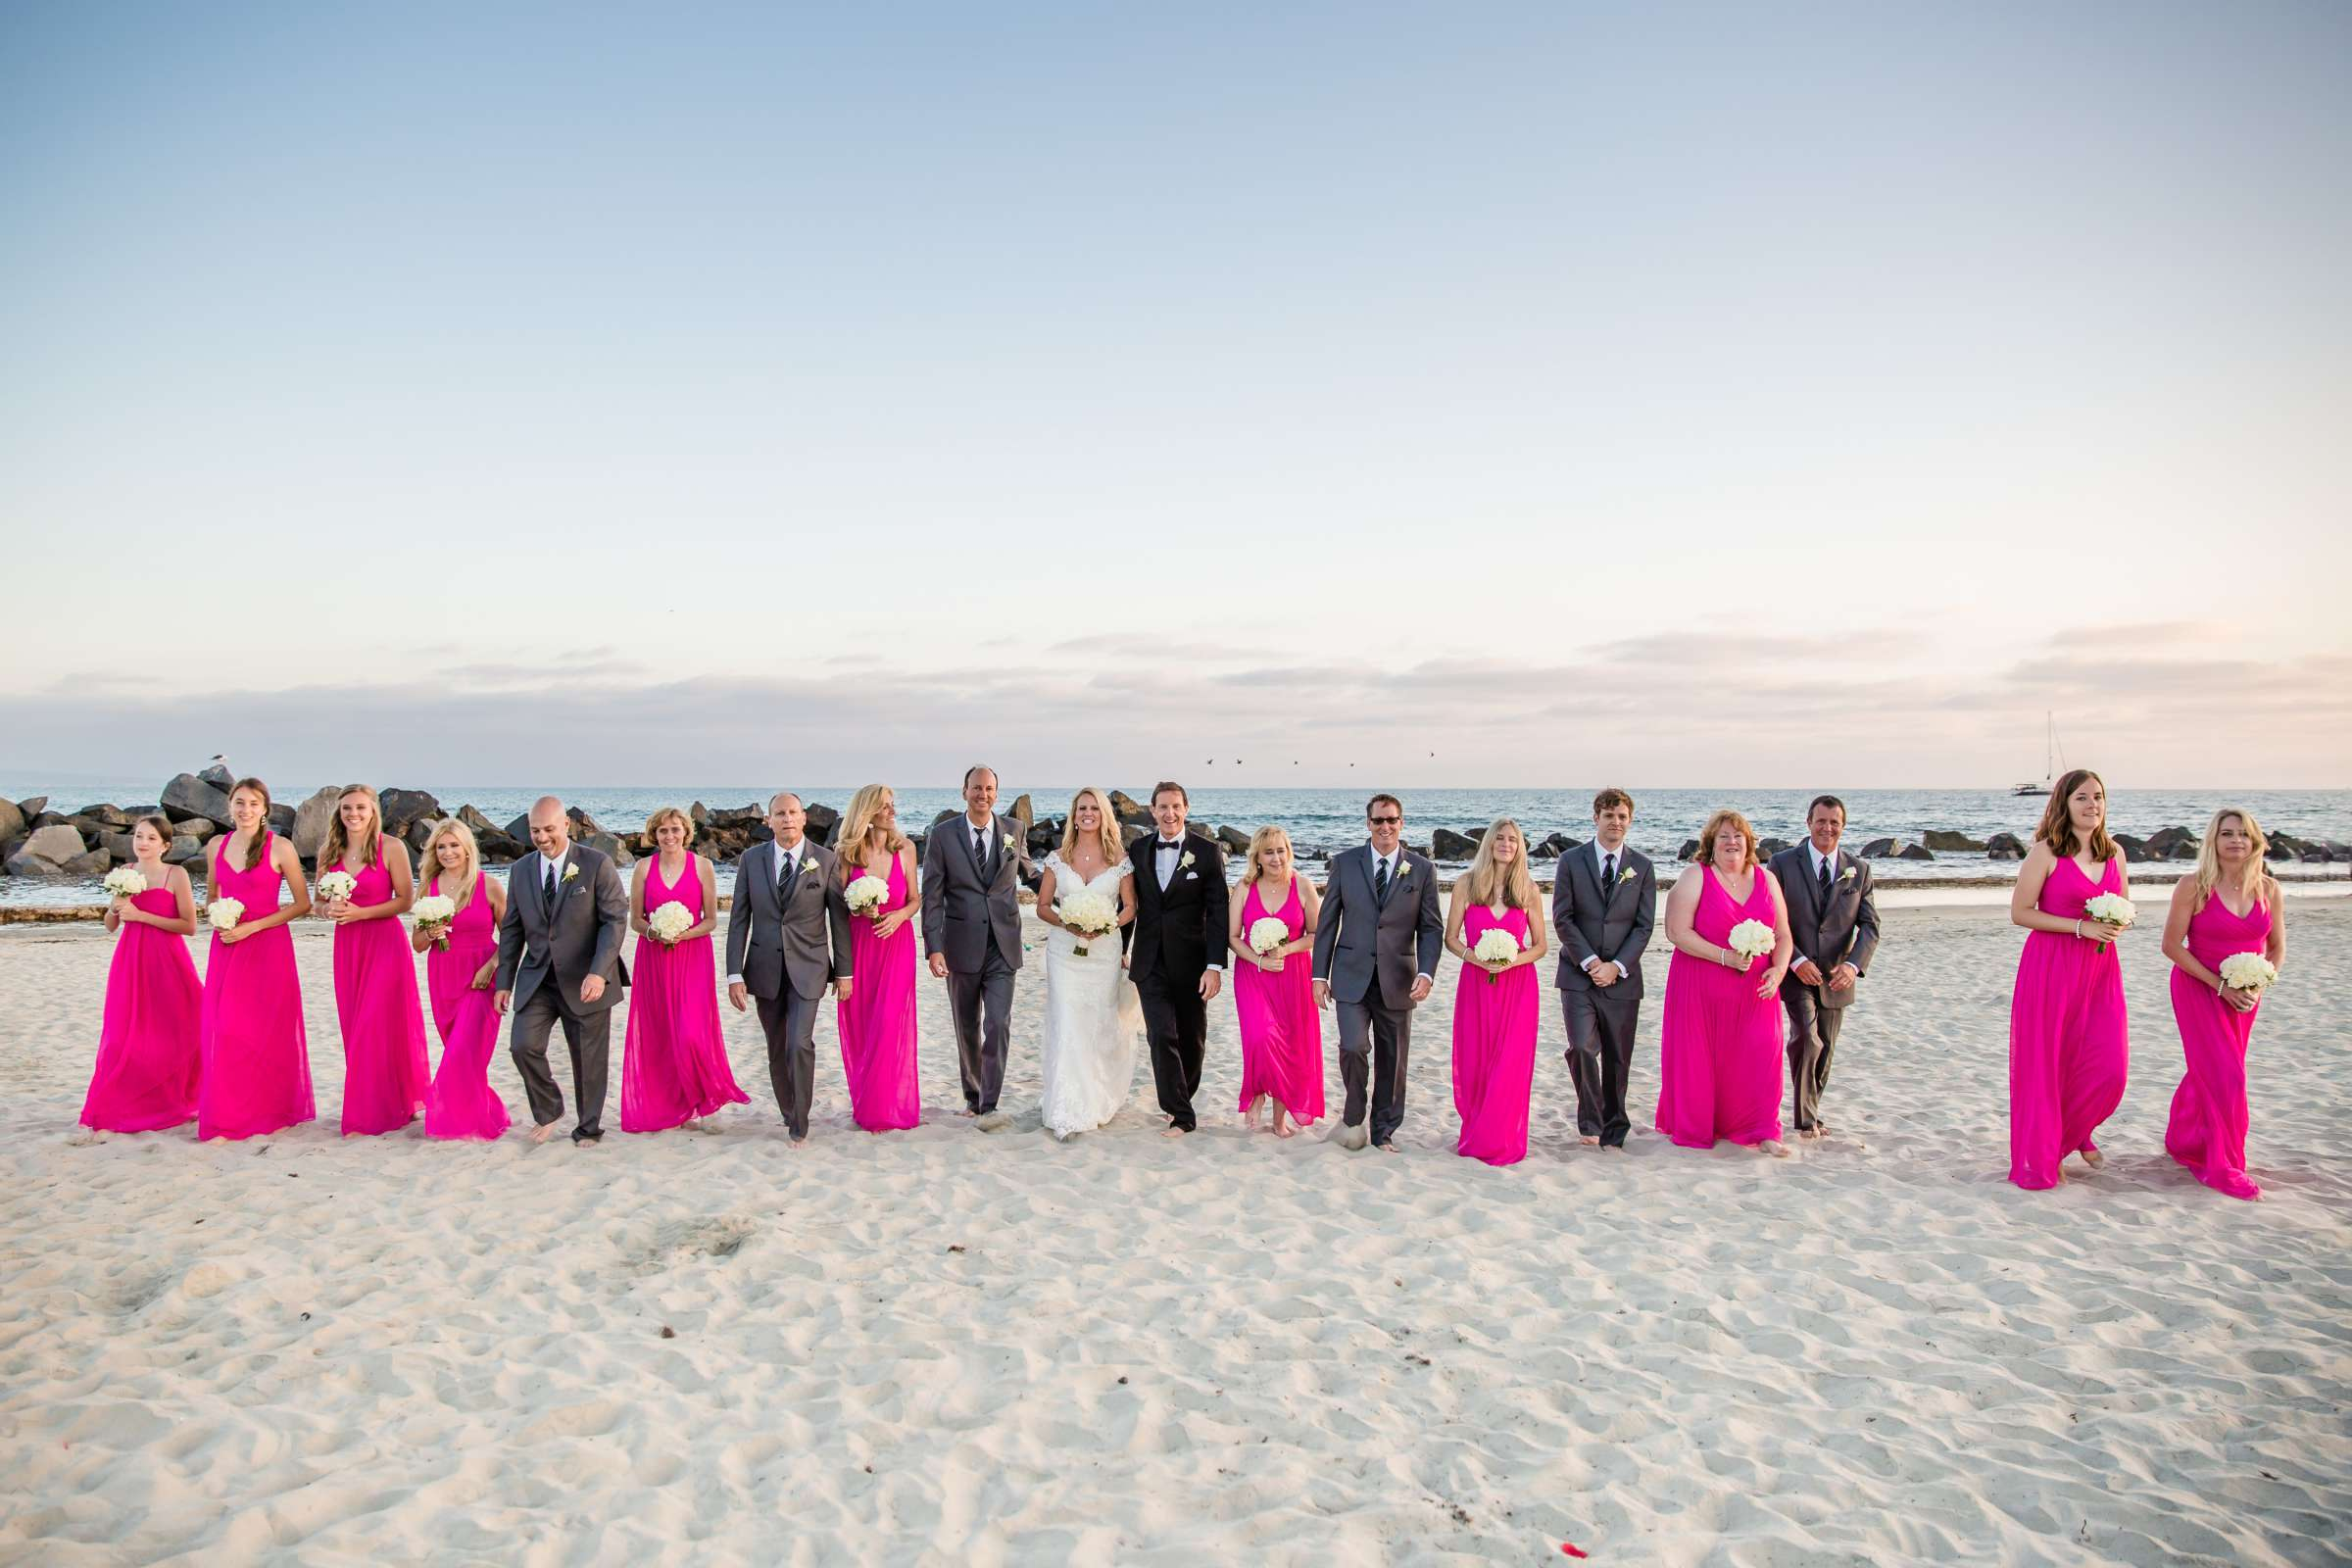 Hotel Del Coronado Wedding coordinated by Creative Affairs Inc, Diane and Paul Wedding Photo #23 by True Photography